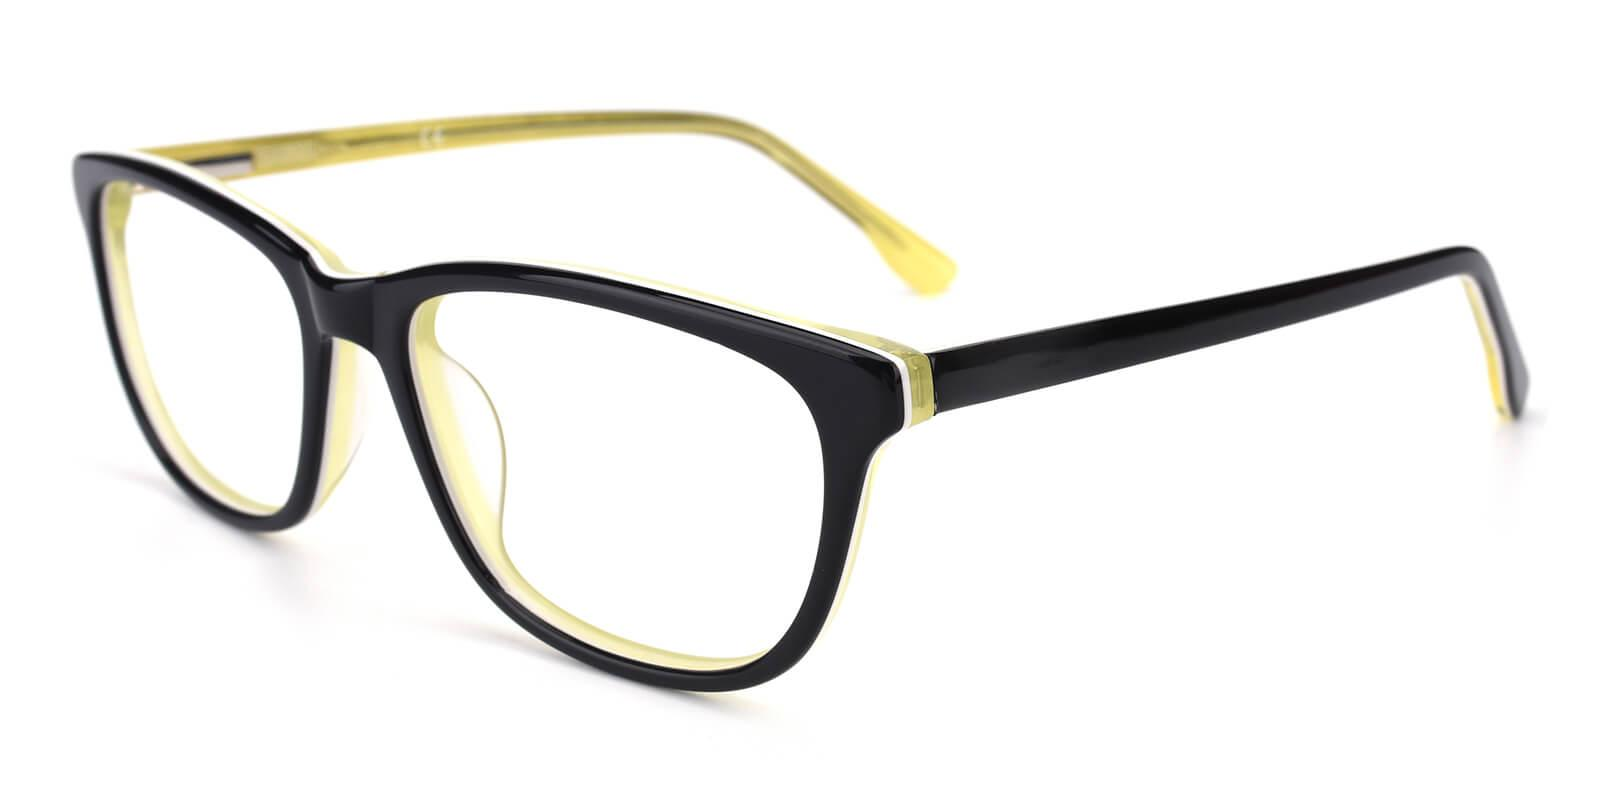 Emblem-Yellow-Square / Cat-Acetate-Eyeglasses-additional1